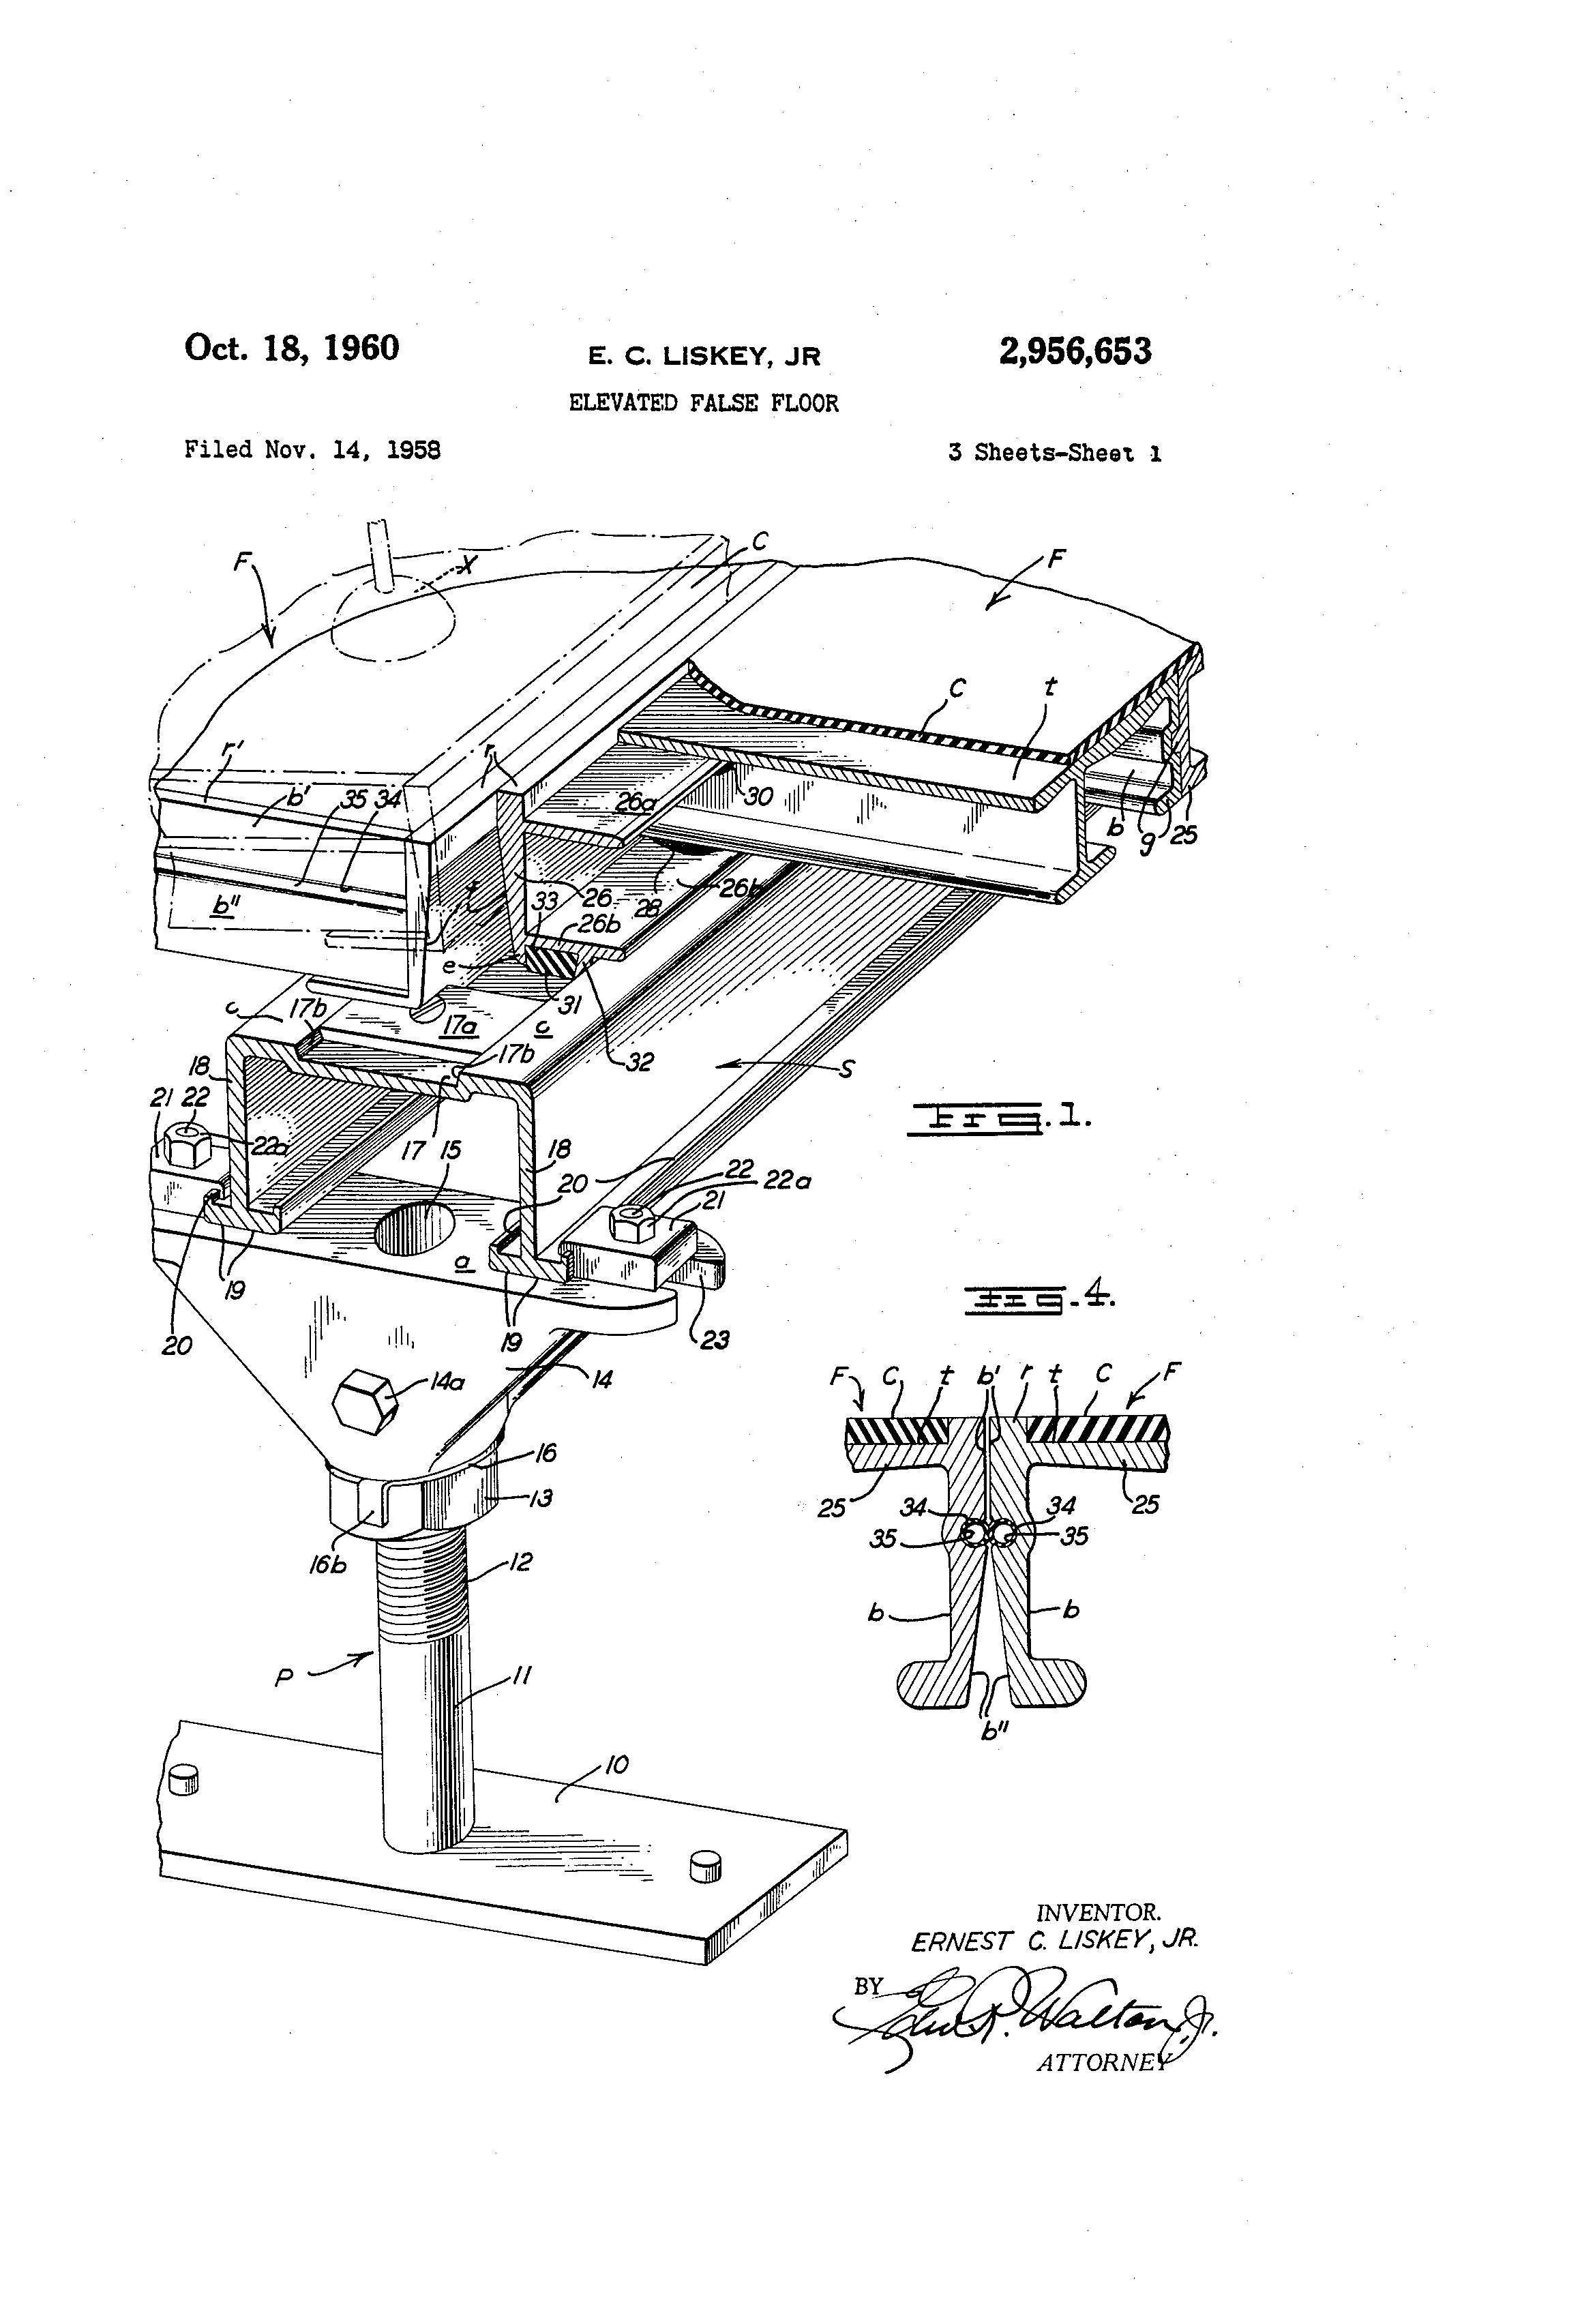 Floor Elevation False : Patent us elevated false floor google patents